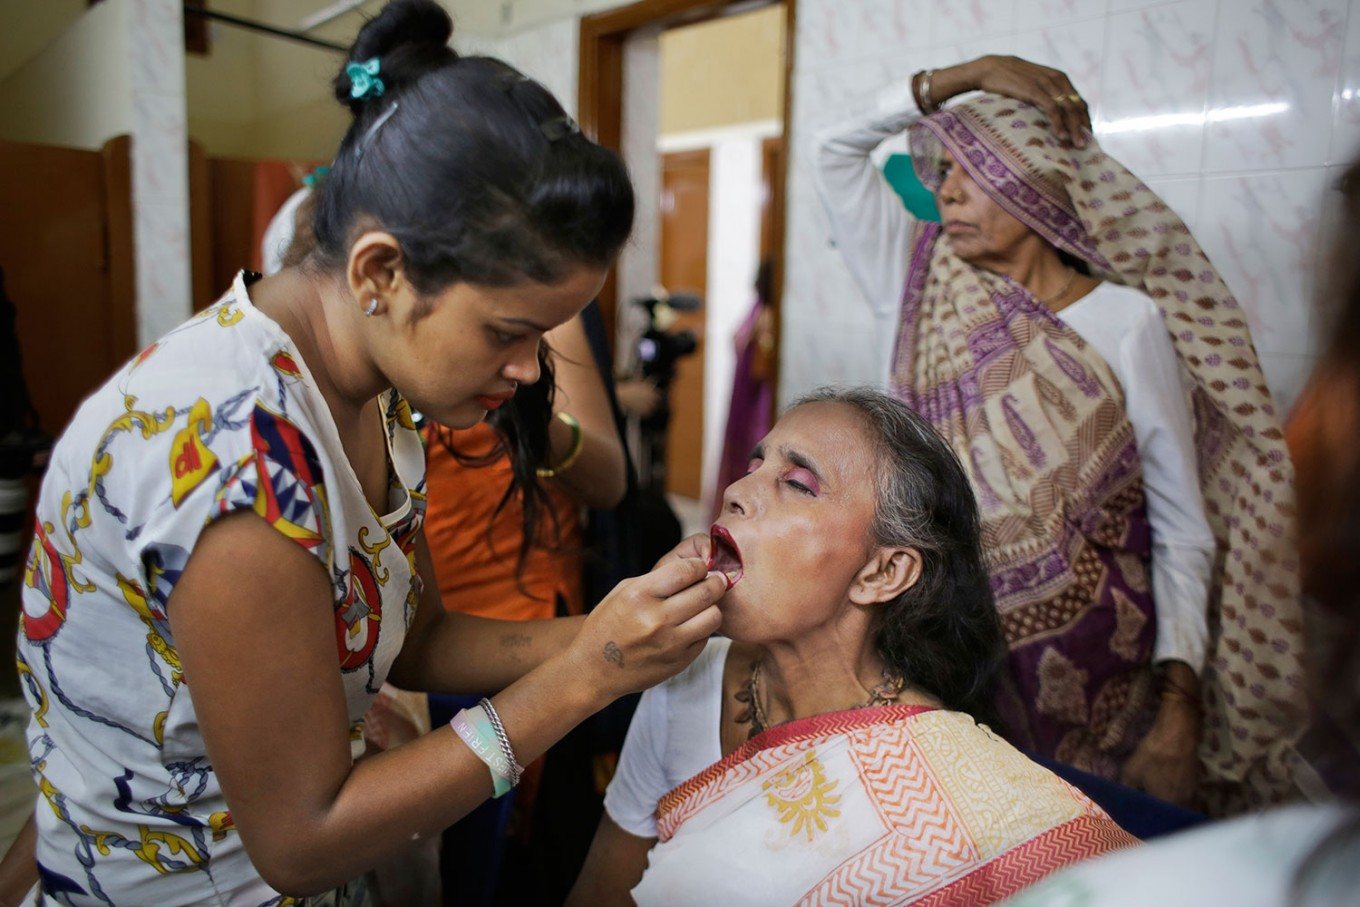 A makeup artist applies lipstick on an Indian Hindu widow before a fashion show in New Delhi, India, Saturday, Oct. 15, 2016. In most of India, millions of Hindu widows are expected to live out their days in quiet worship, dressed only in white. They are typically barred from all religious festivities because their very presence is considered inauspicious. Their lives appear to be changing for better with women's groups and Indian aid organizations taking interest in their welfare. AP Photo/Altaf Qadri